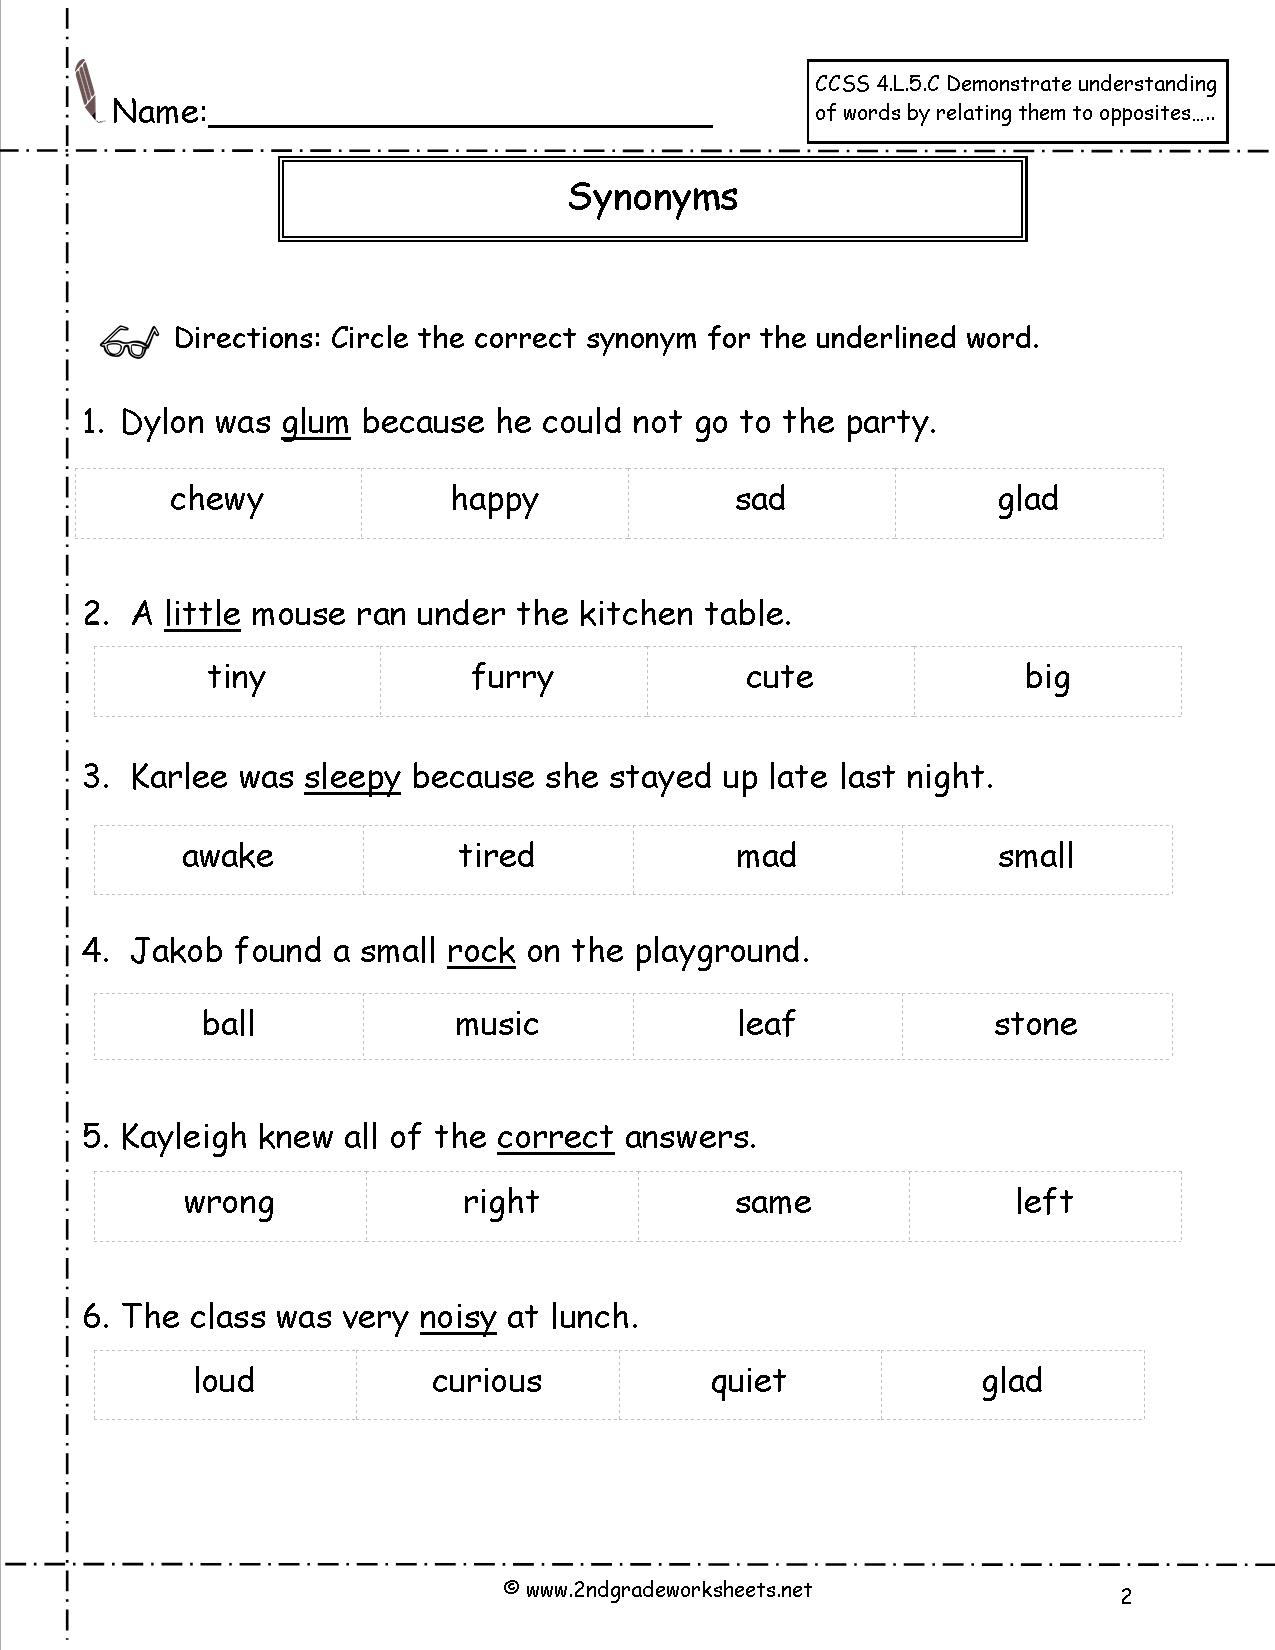 Synonyms And Antonyms Worksheets | Free Printable Worksheets Synonyms Antonyms And Homonyms